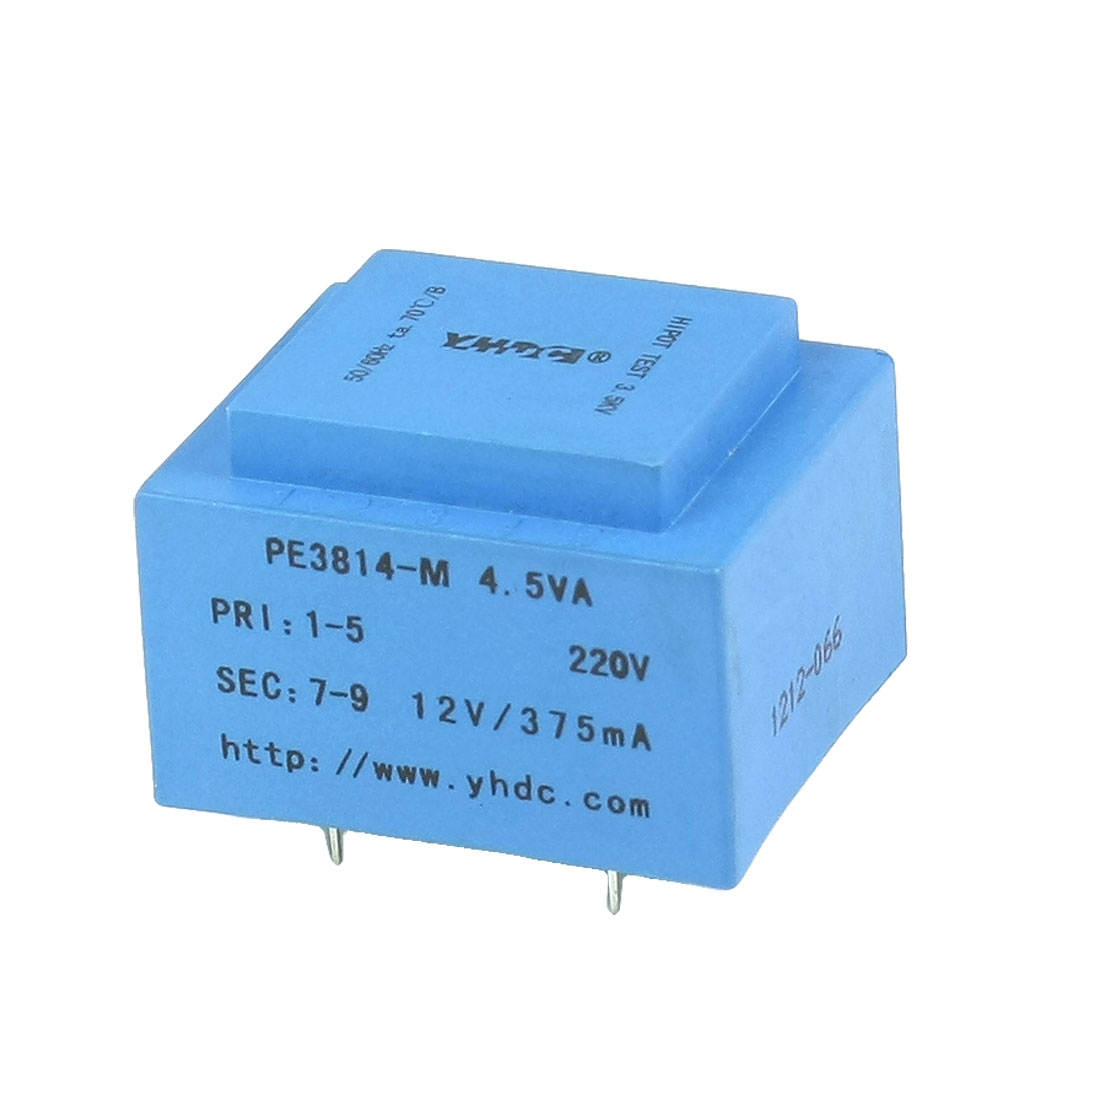 4.5VA 50/60 Hz 220V Input 12V Output 4 Pins Encapsulated Transformer